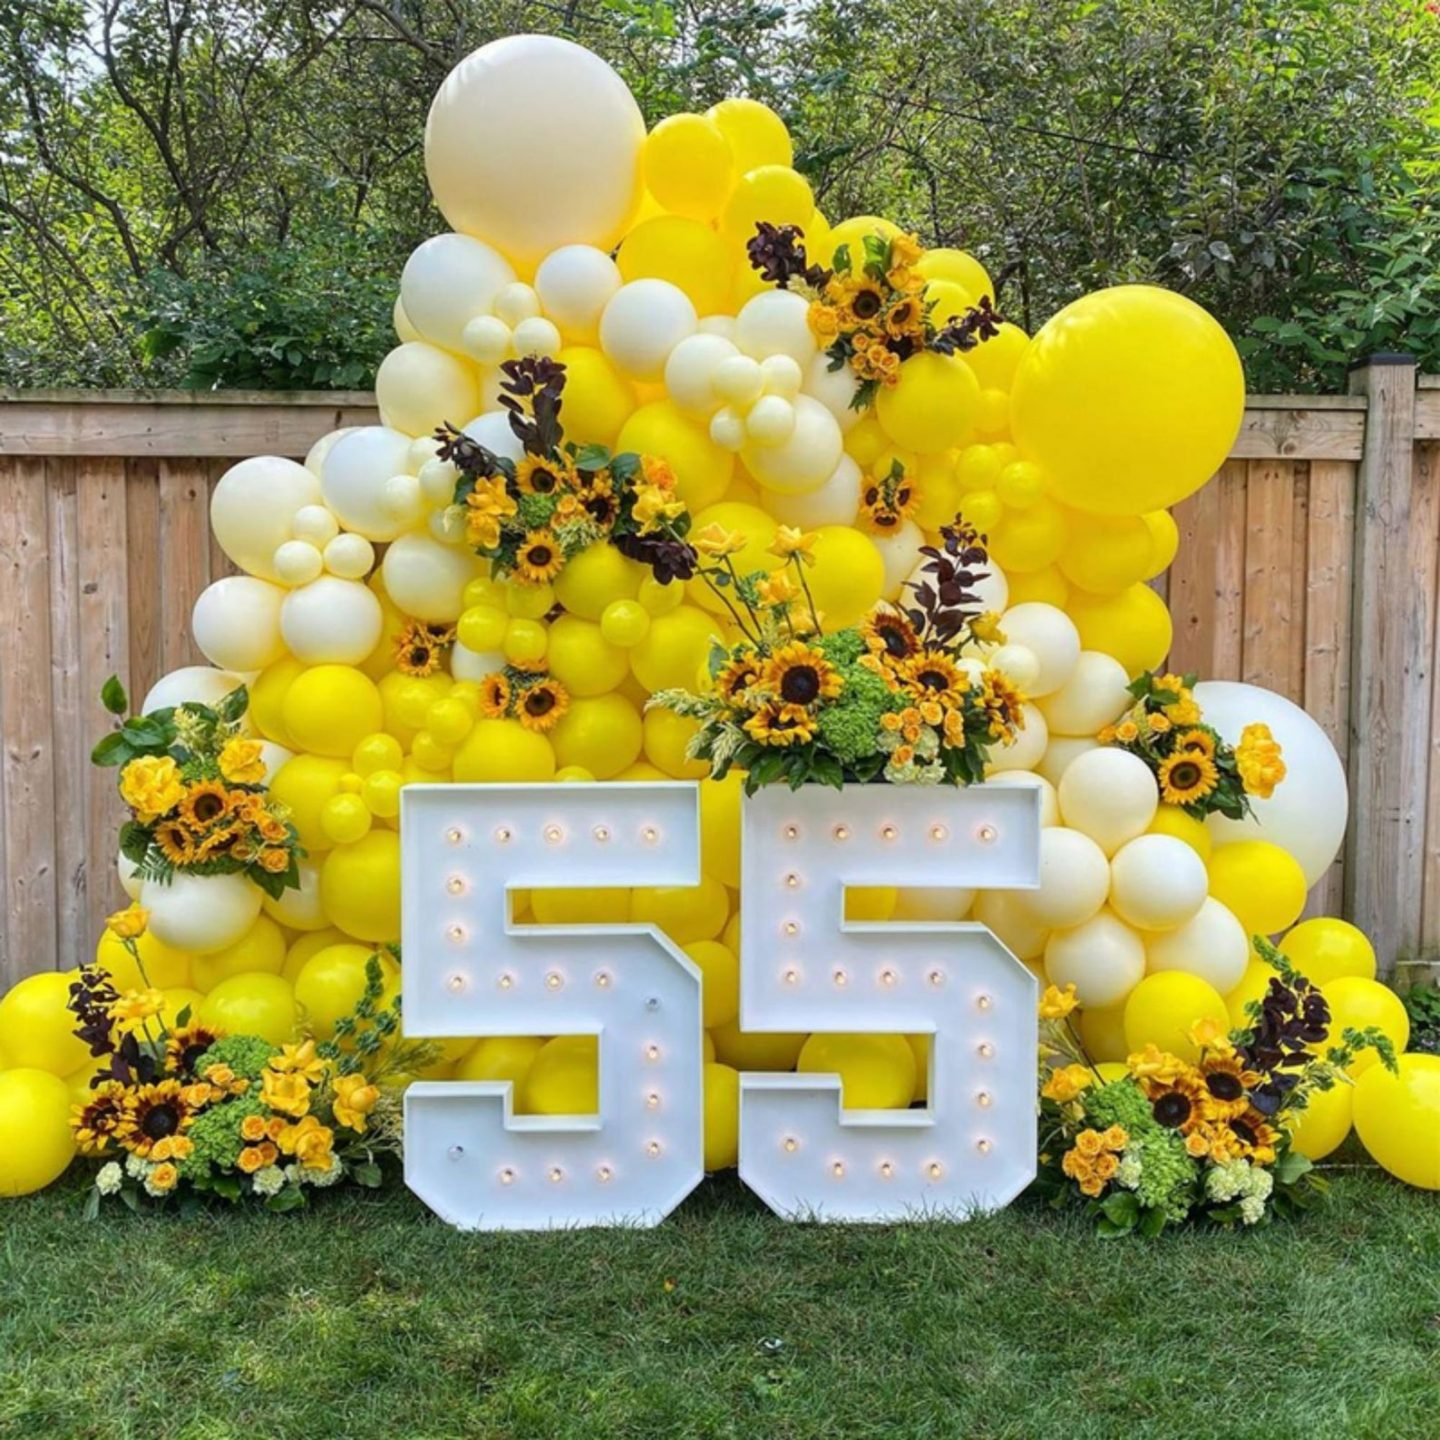 Fancy yellow balloons and birthday sign with numbers